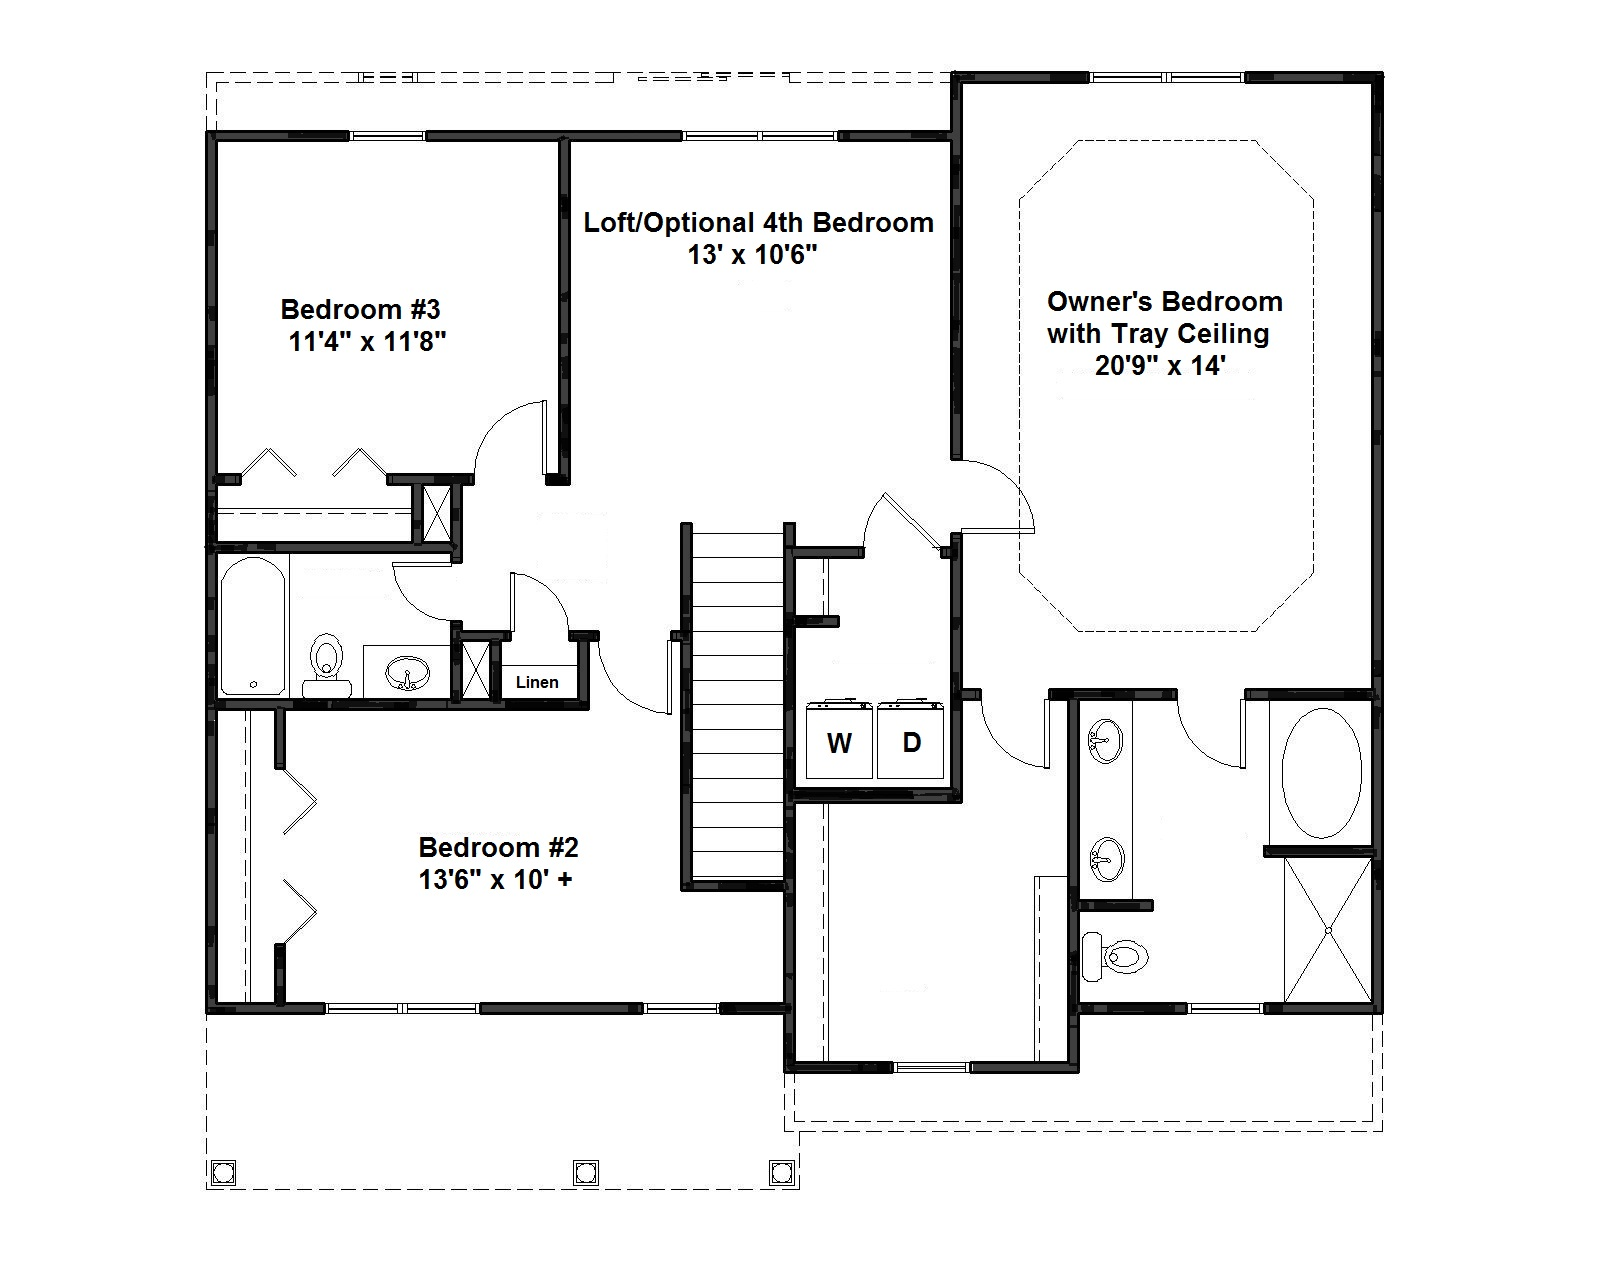 Link to Second Floor Plans